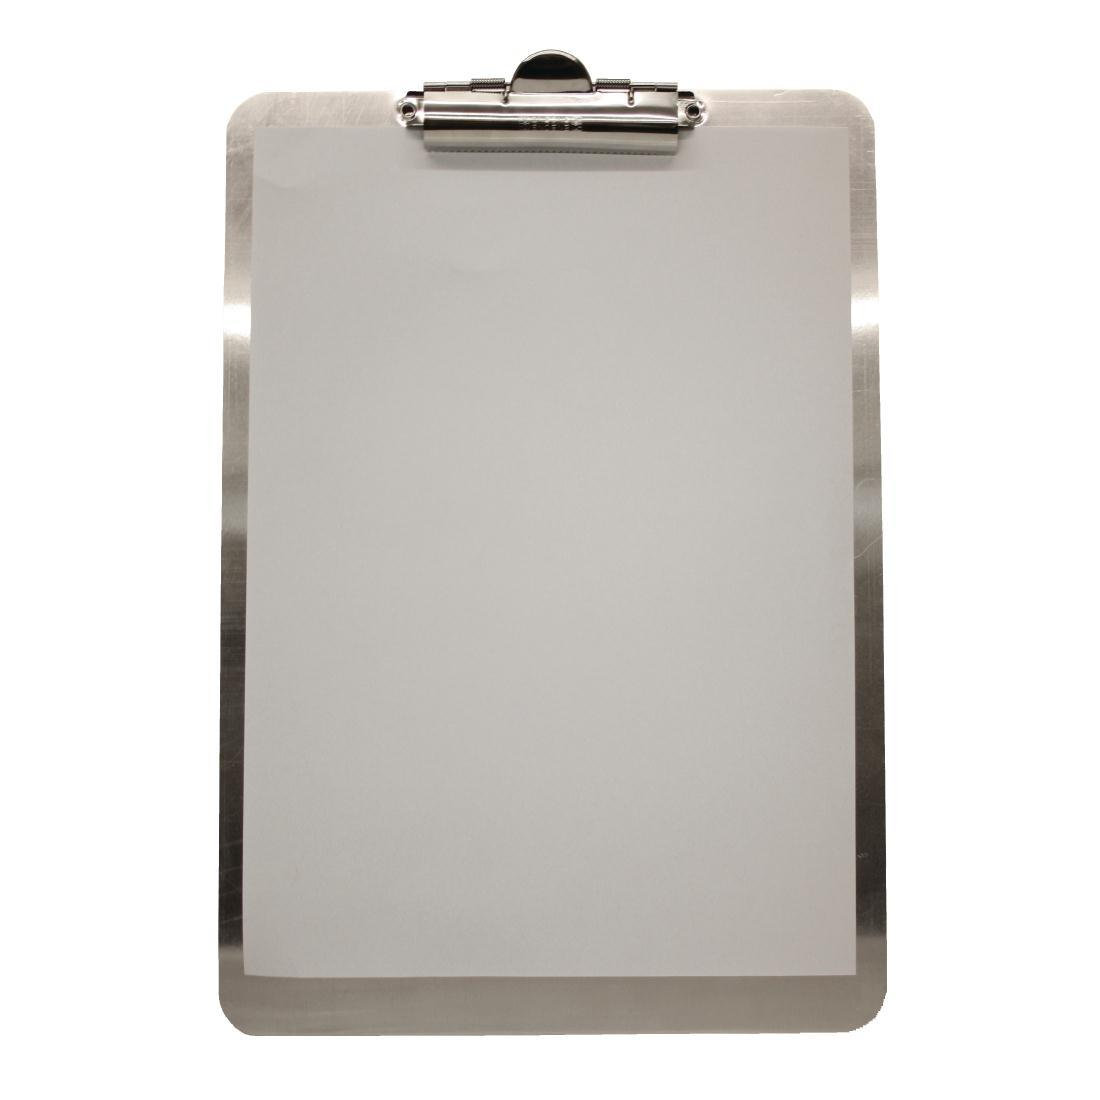 GM305 - Metal A5 Menu Presentation Clipboard - Each - GM305